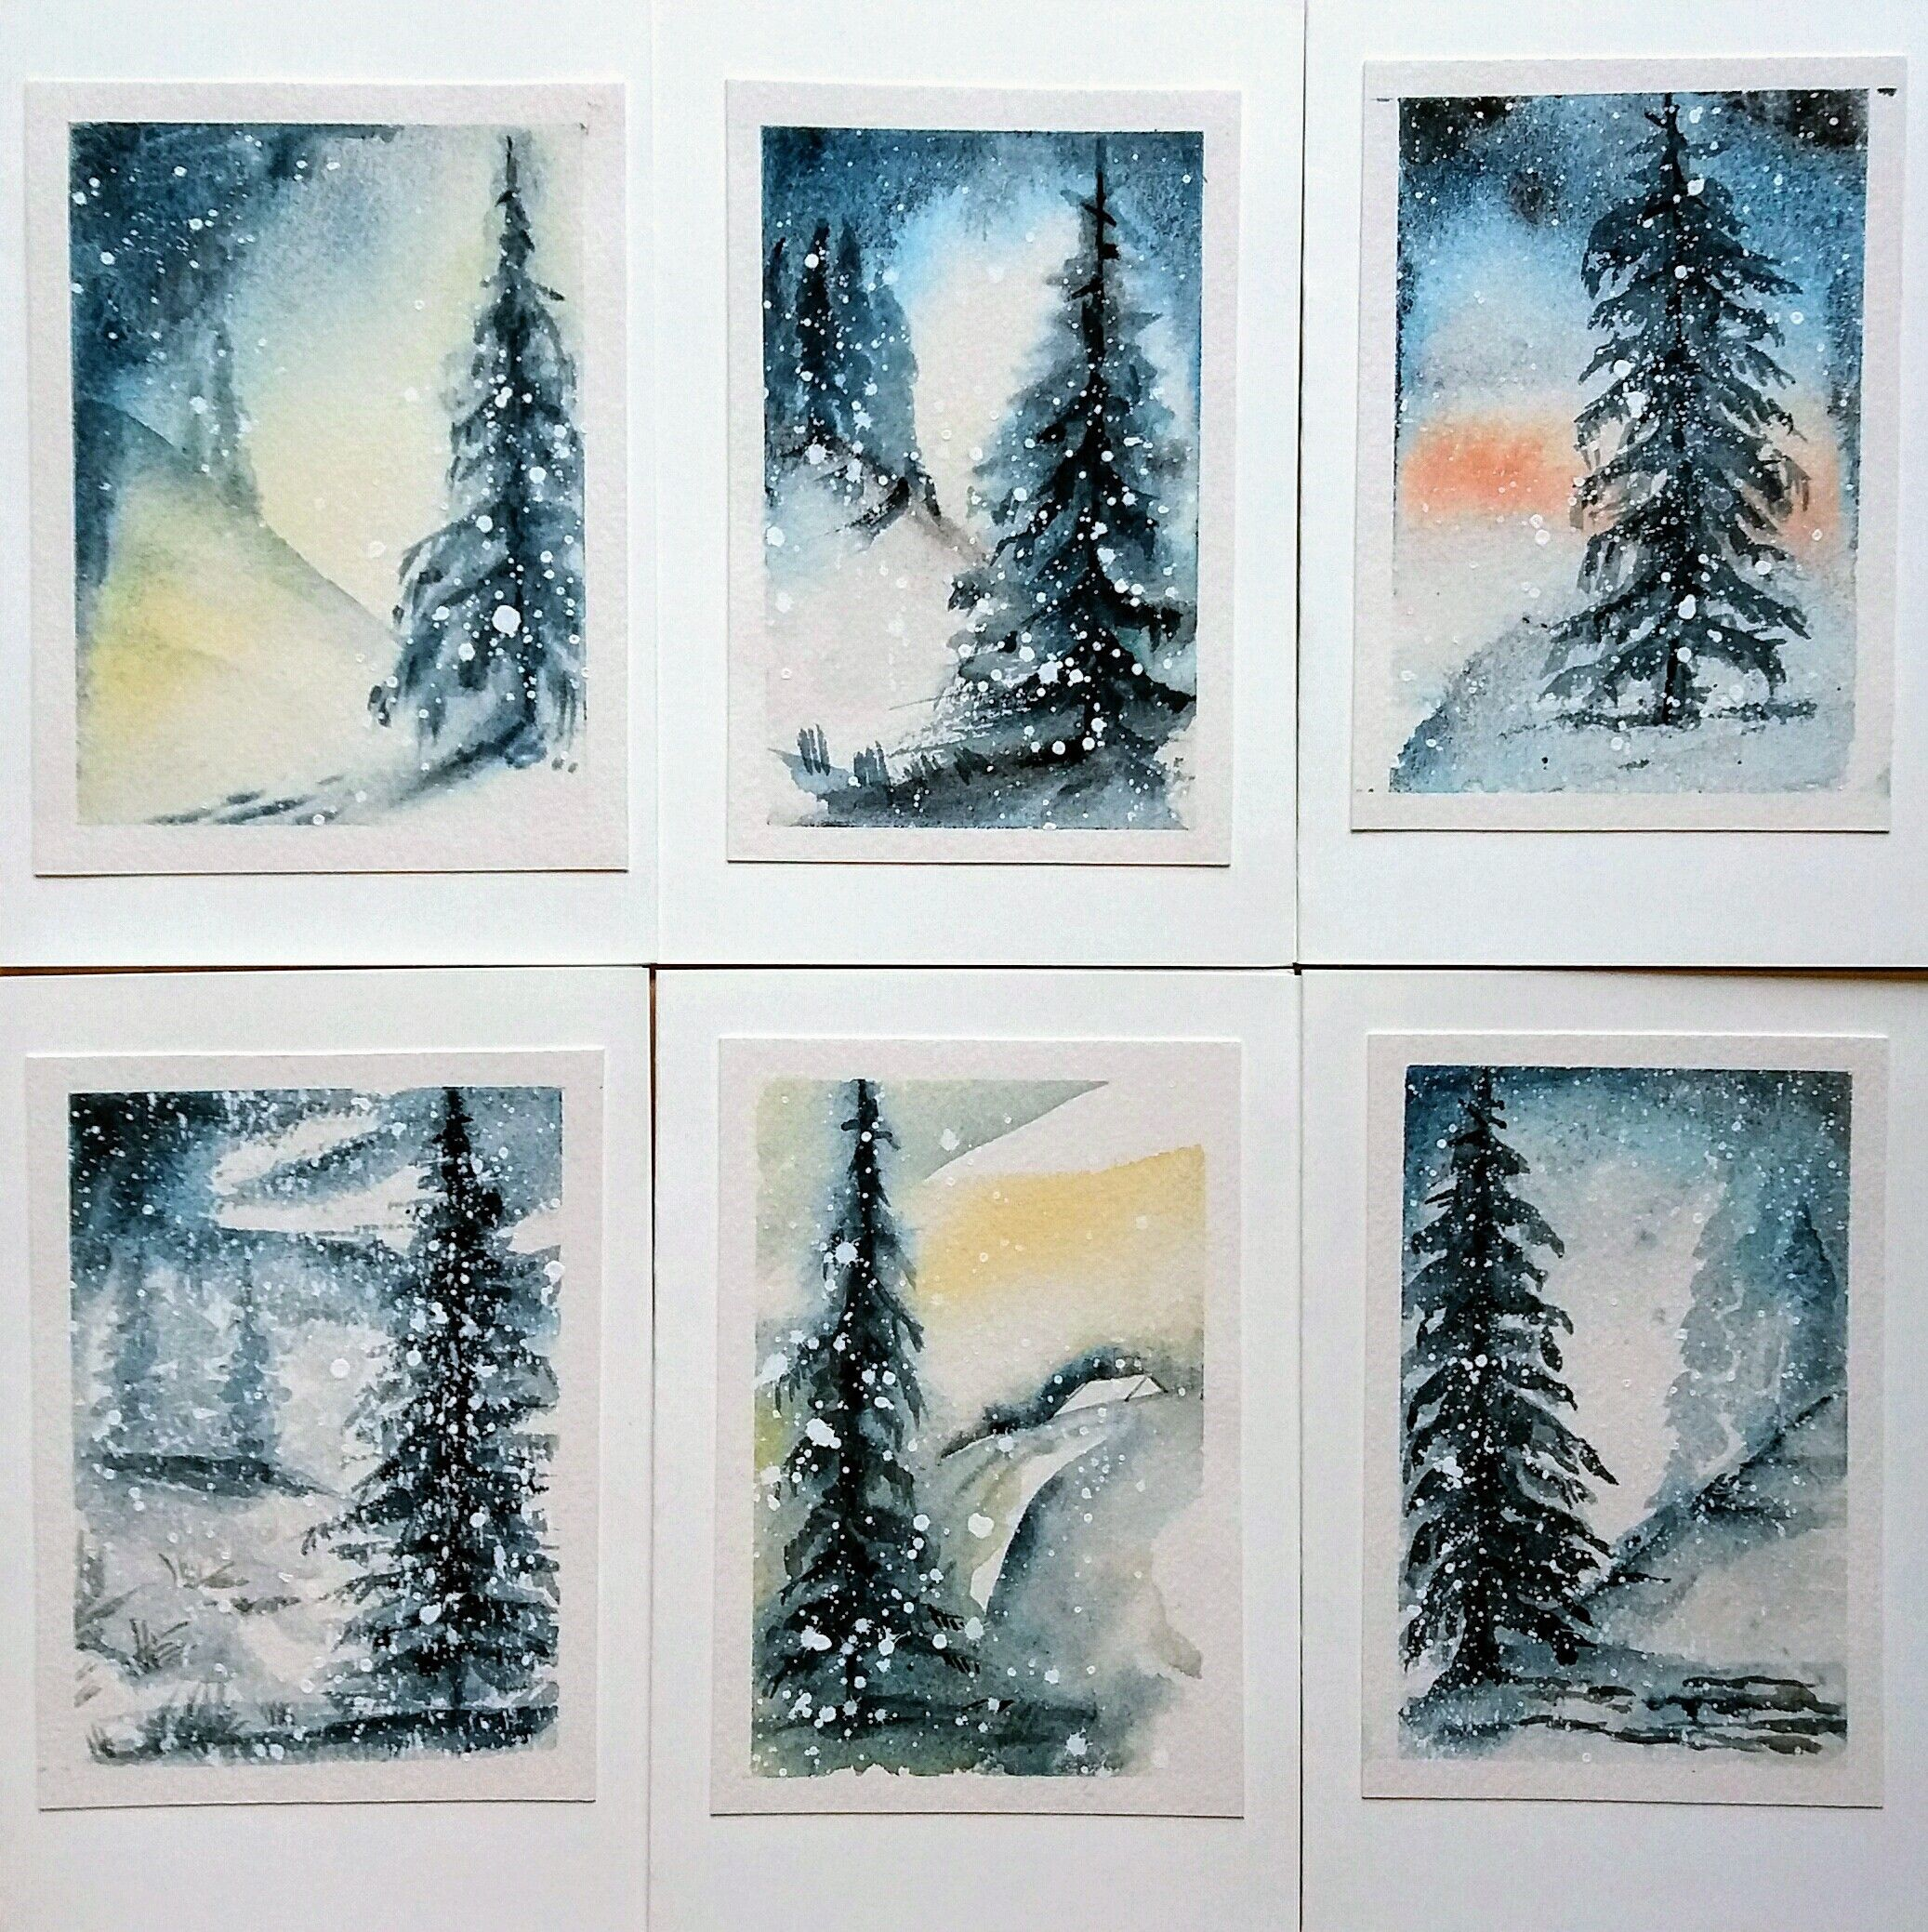 Aquarell Karten Weihnachten Watercolor Cards Aquarell